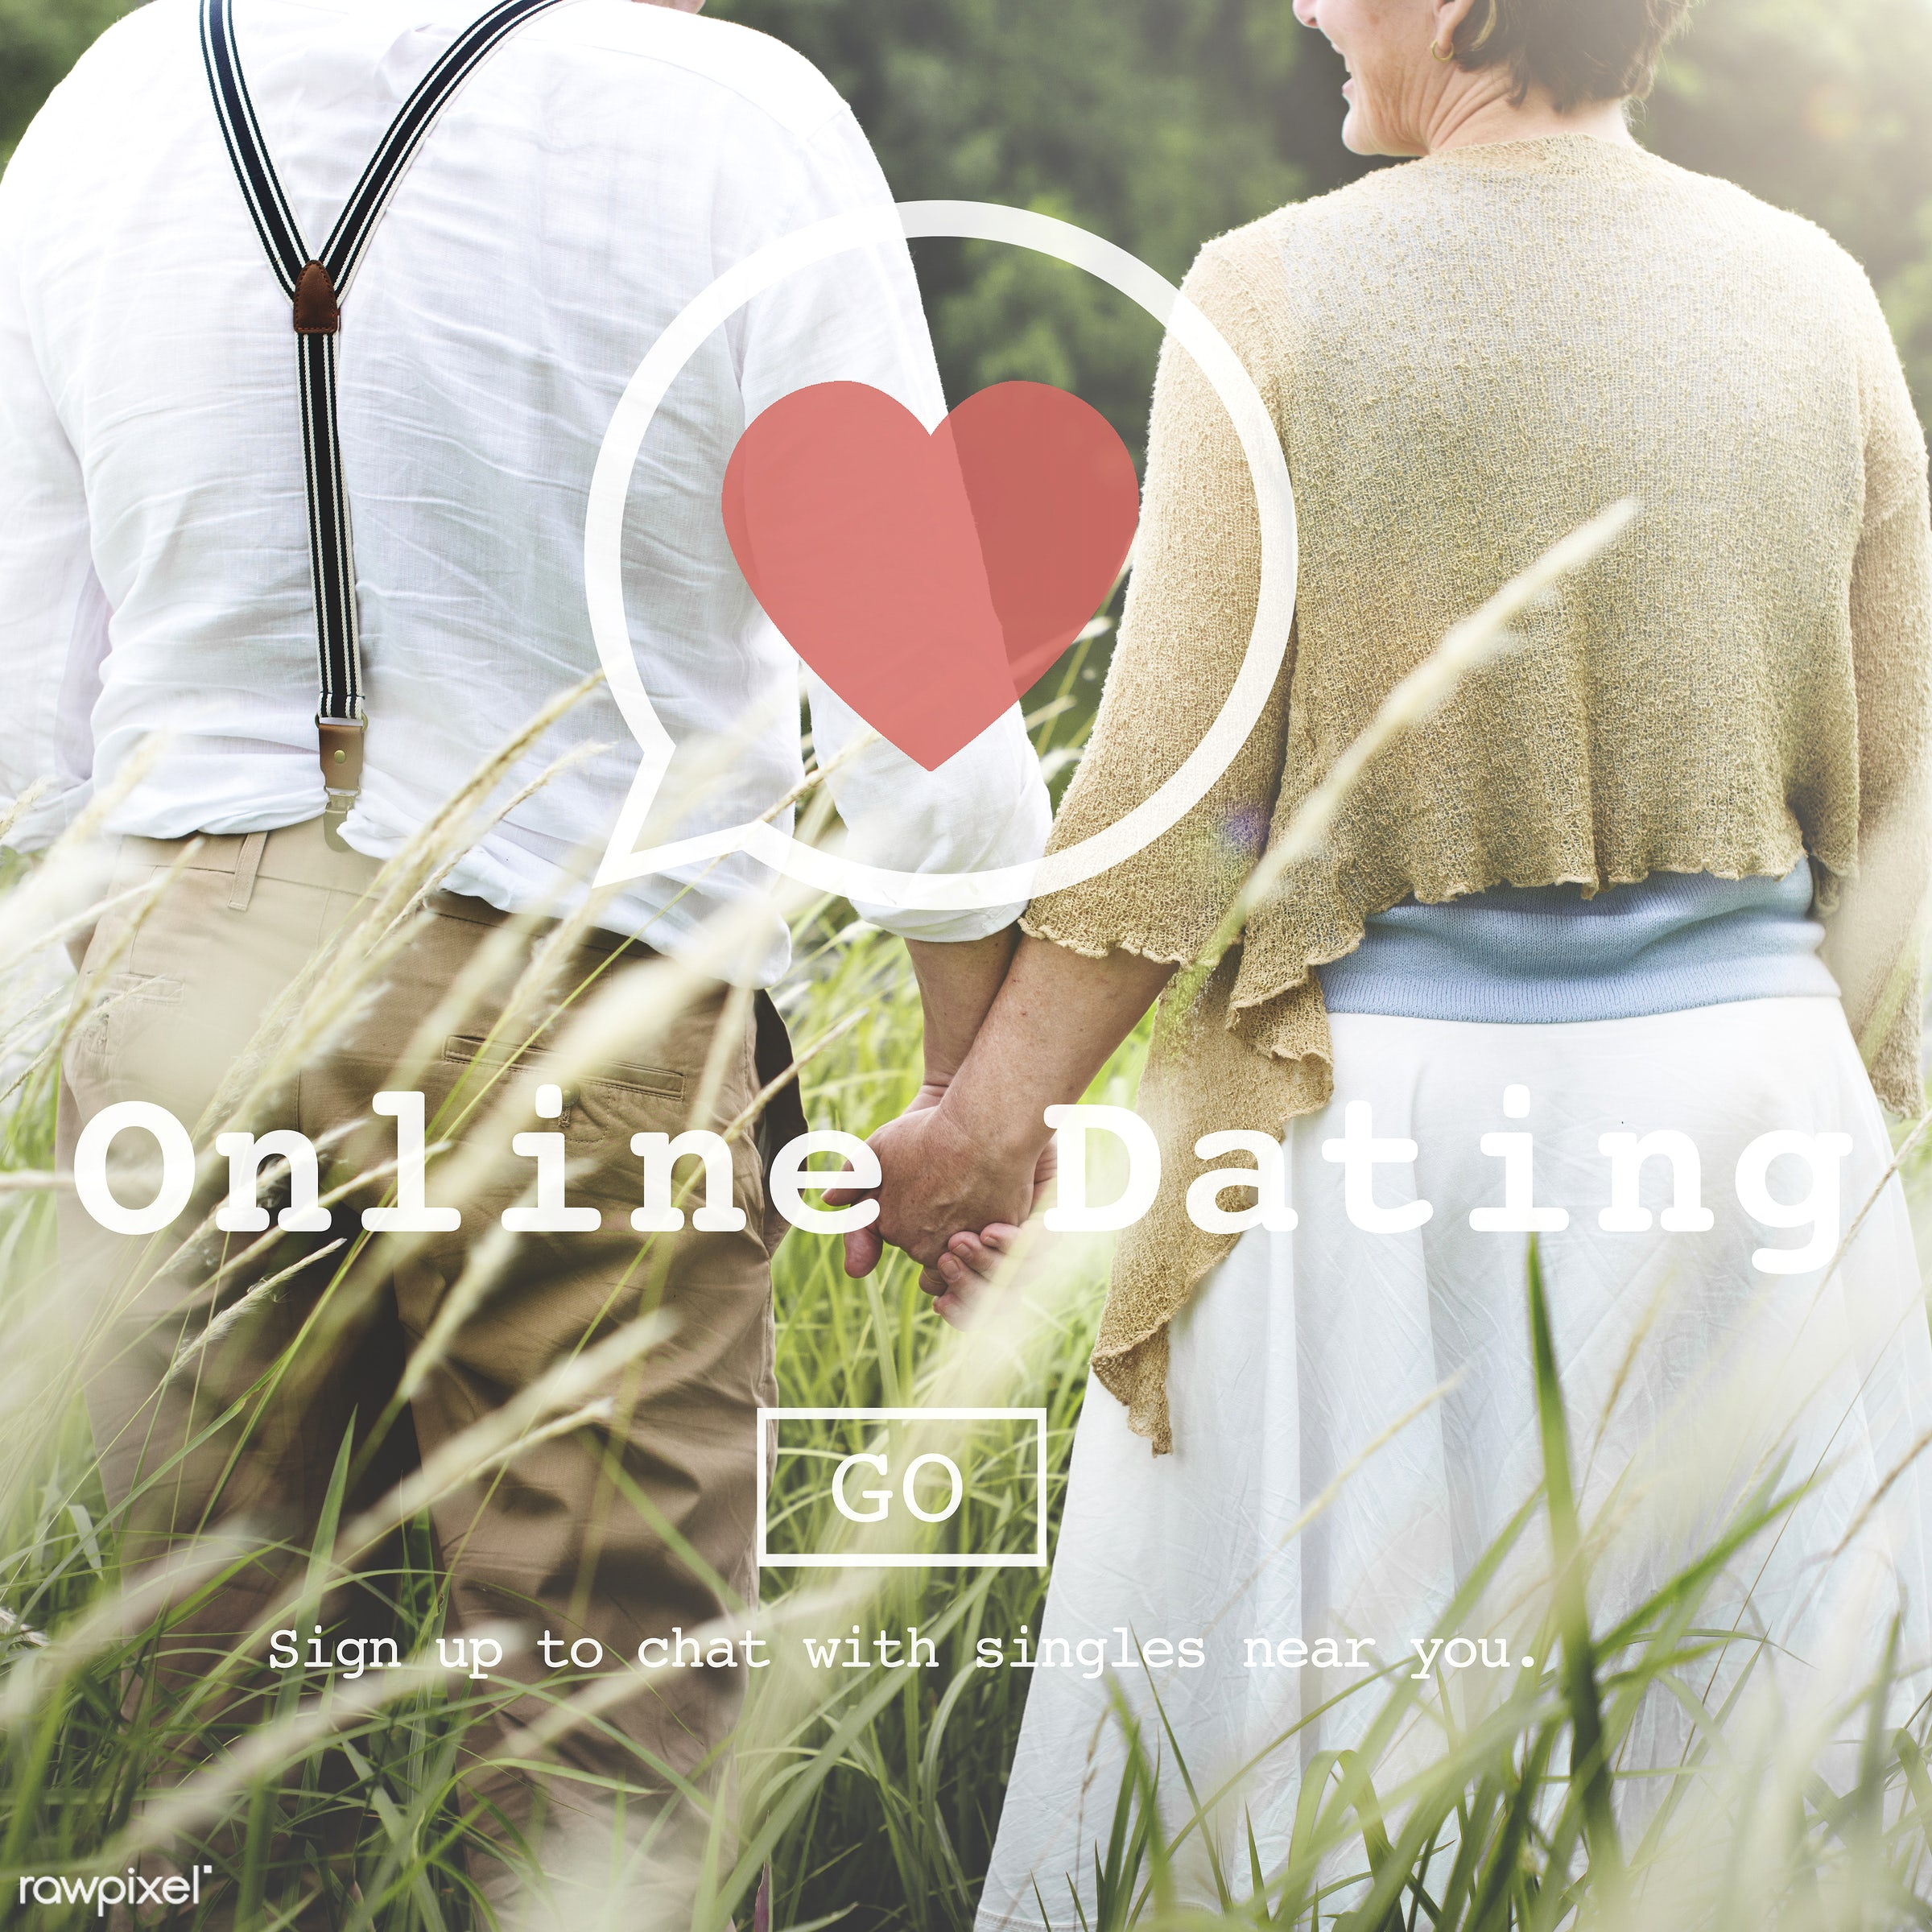 romance, bonding, communication, connect, couple, court, dating, dspace, field, go steady, happiness, heart, holding hands,...